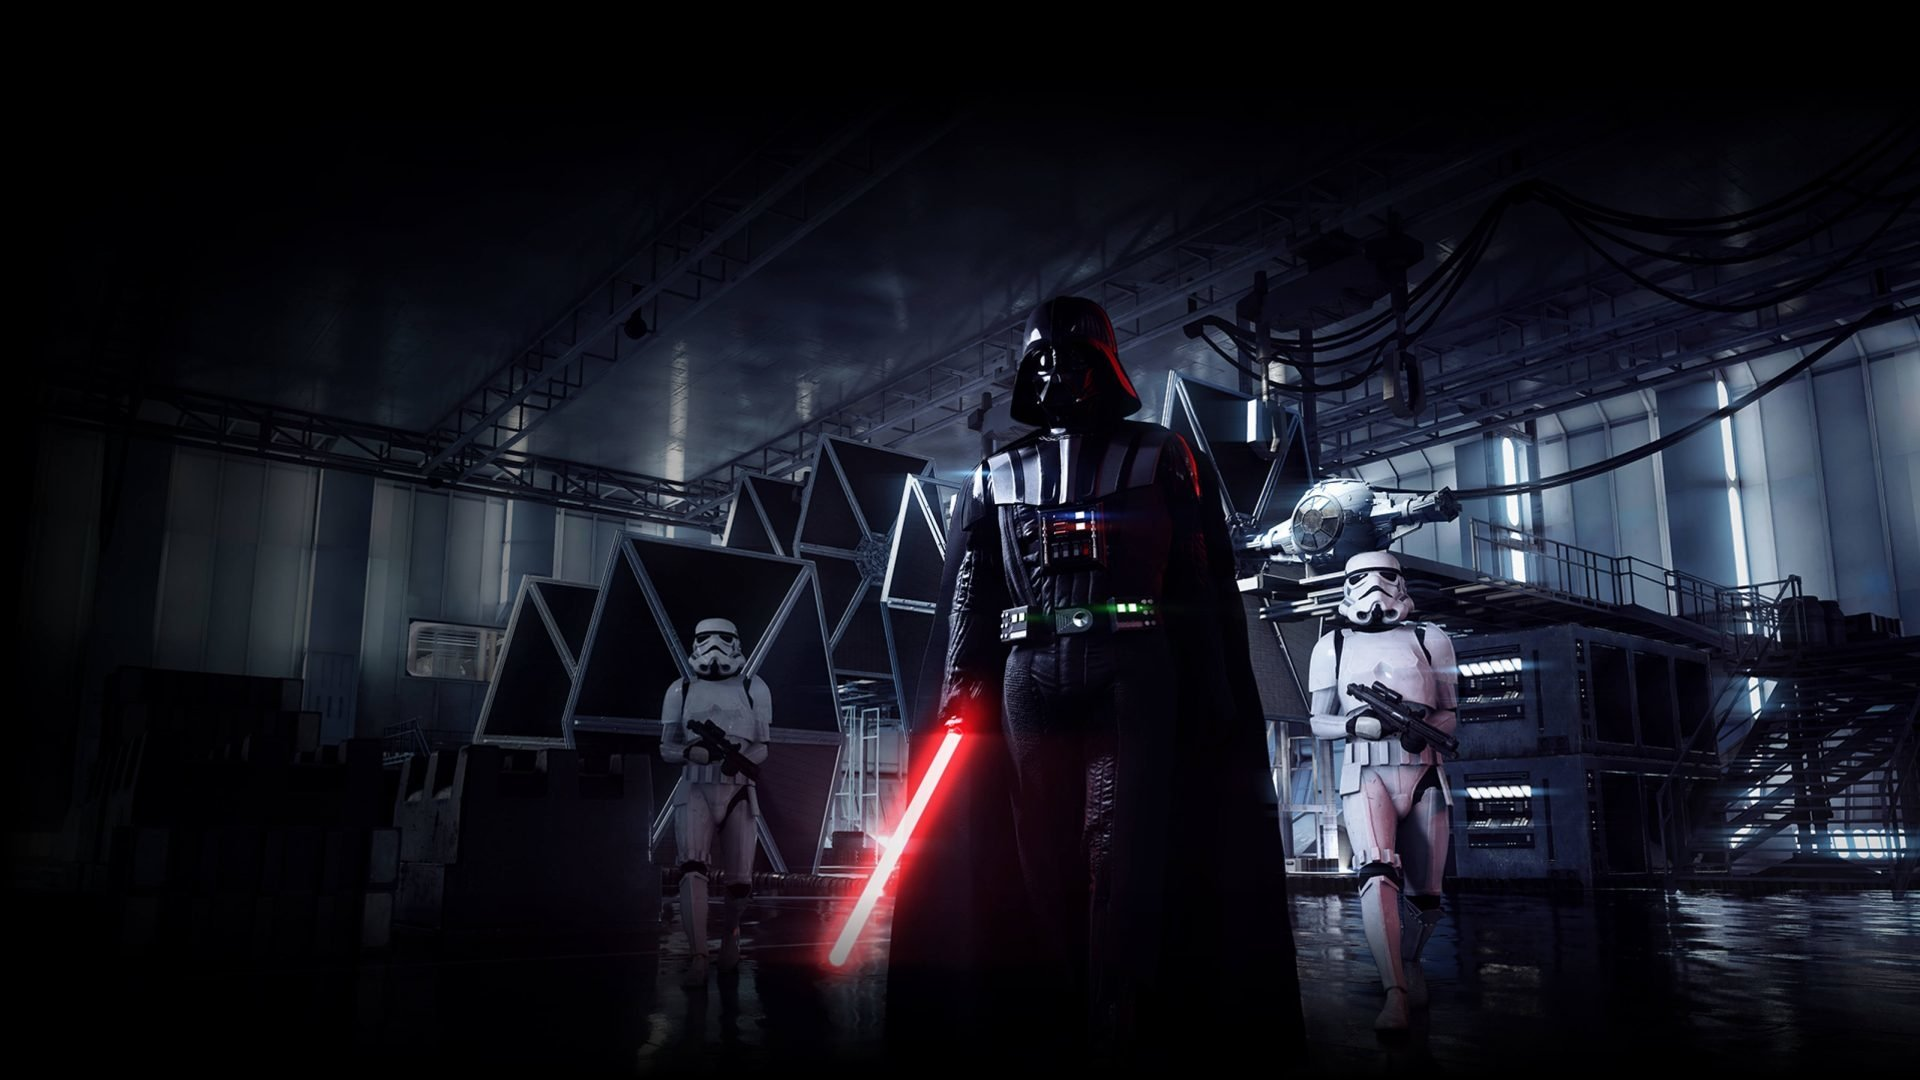 185 Star Wars Battlefront Ii 2017 Hd Wallpapers Background